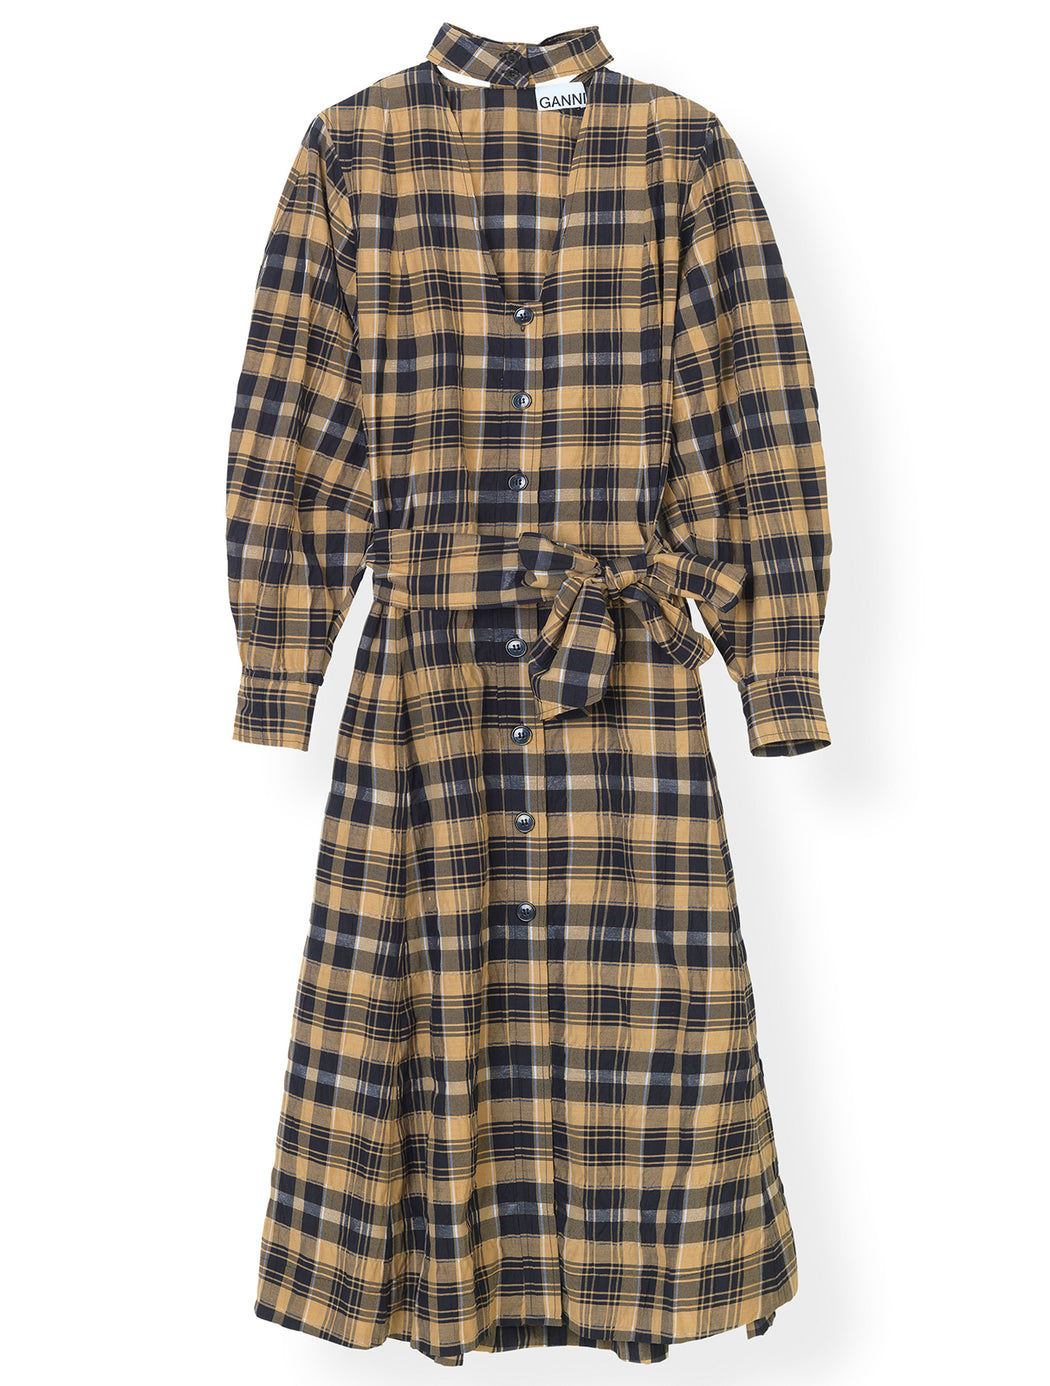 Seersucker Check Shirt Dress